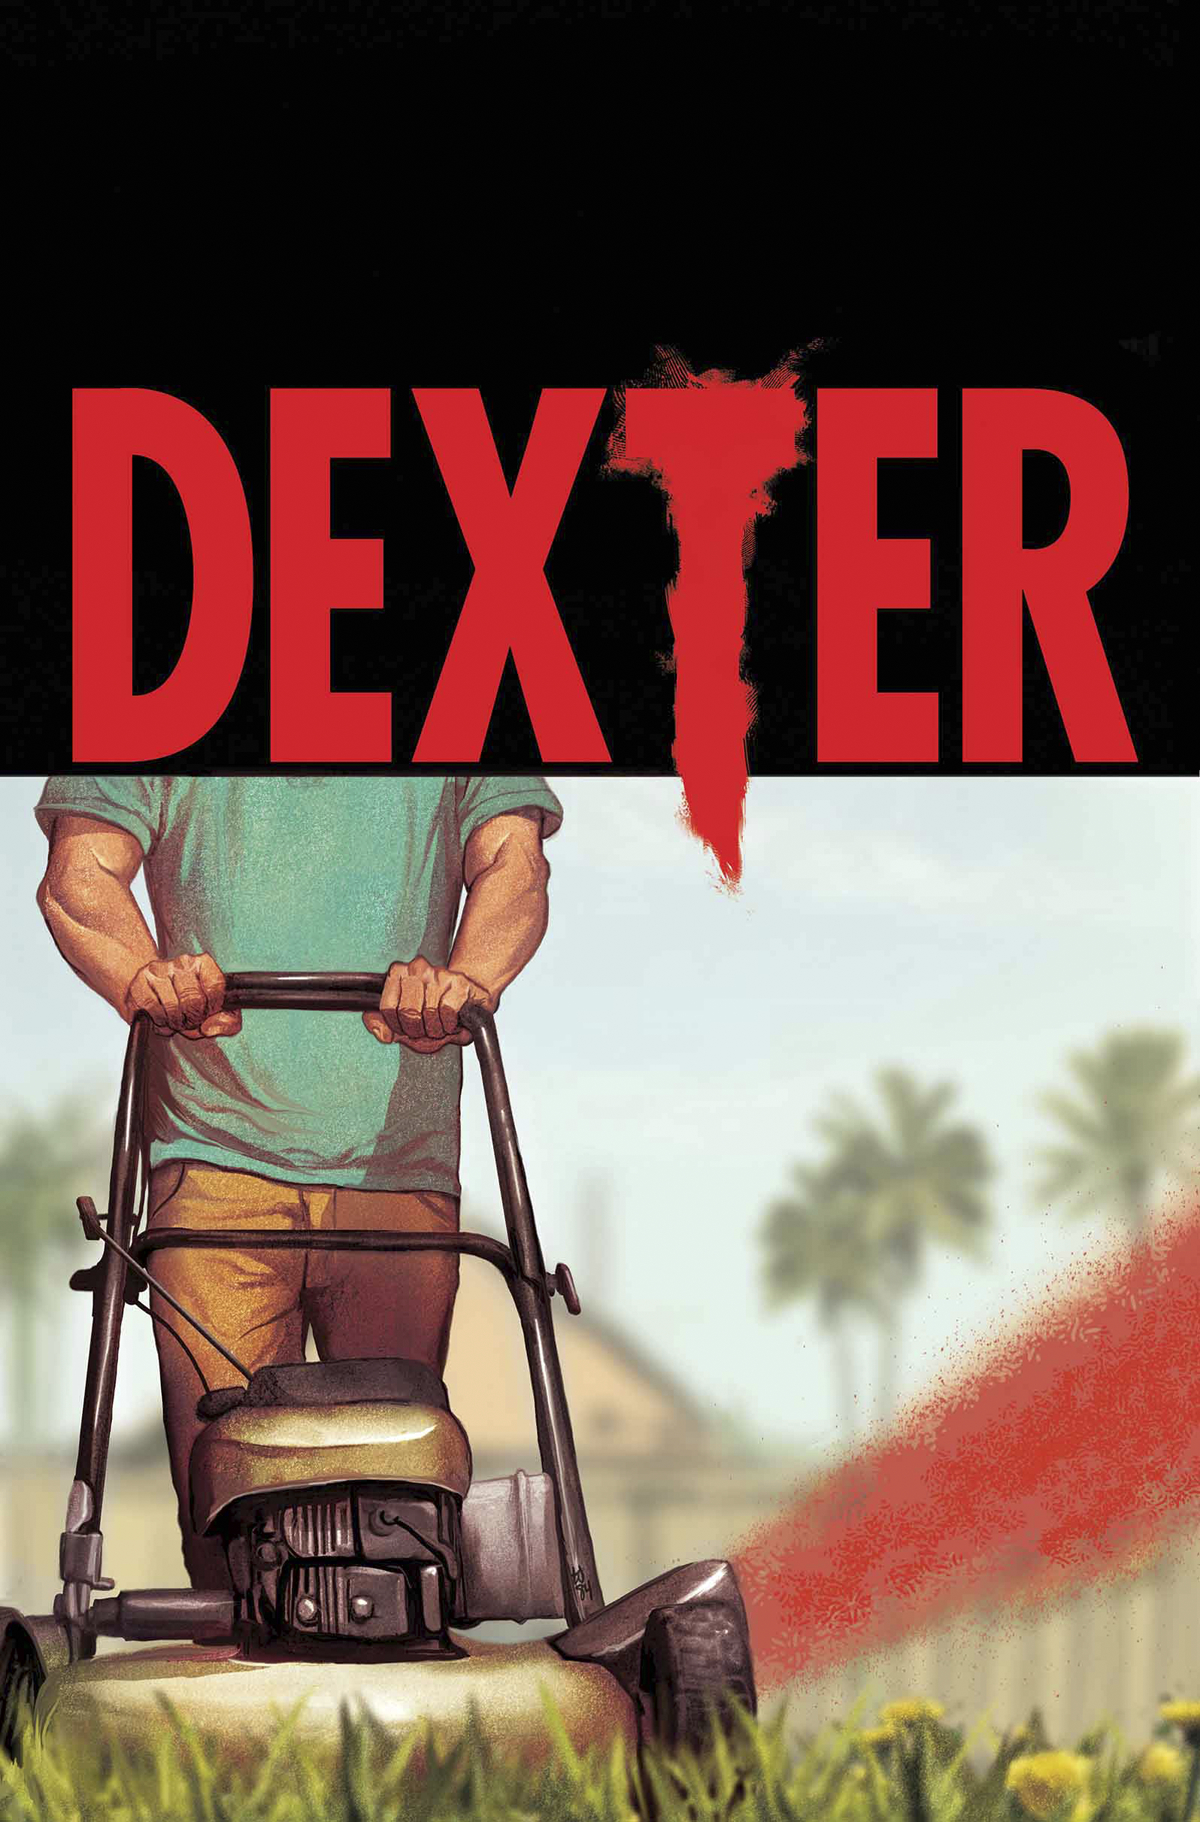 DEXTER #3 (OF 5)